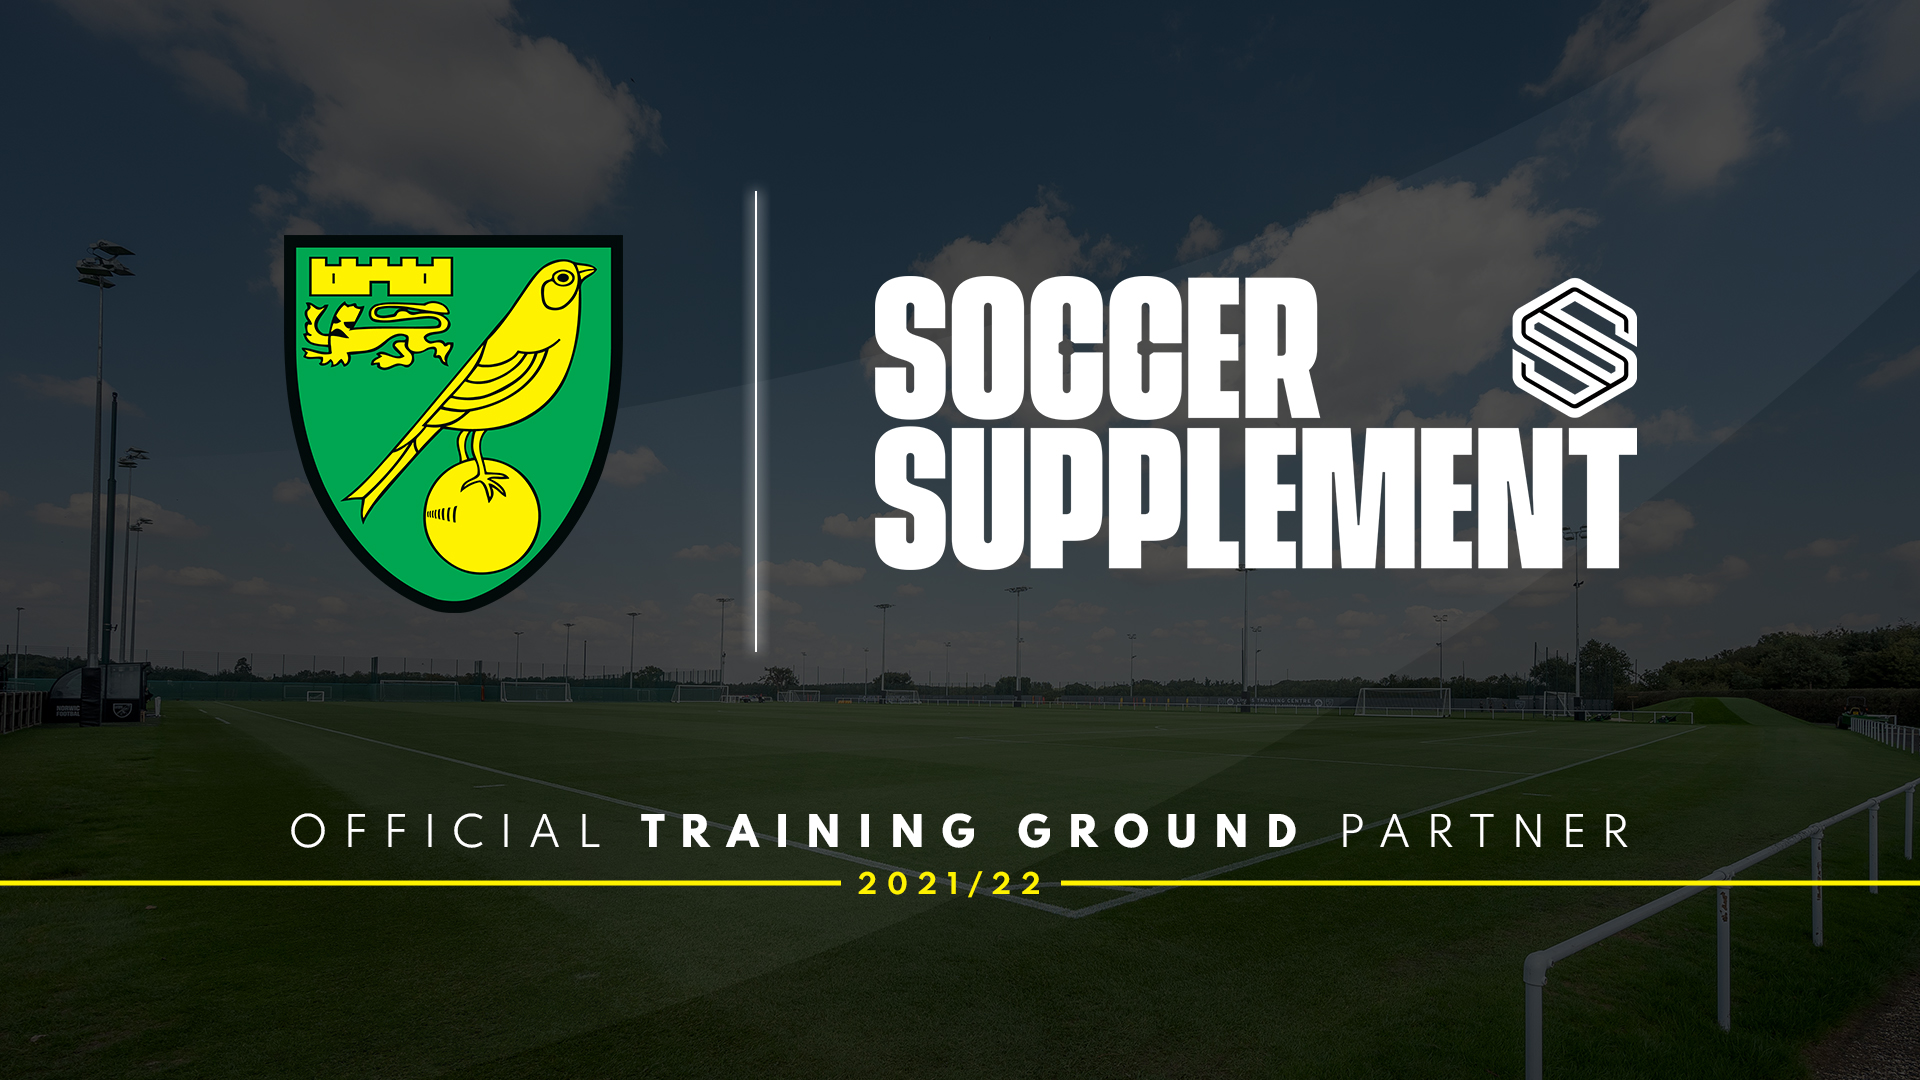 soccer-supplement-becomes-official-training-ground-supplier